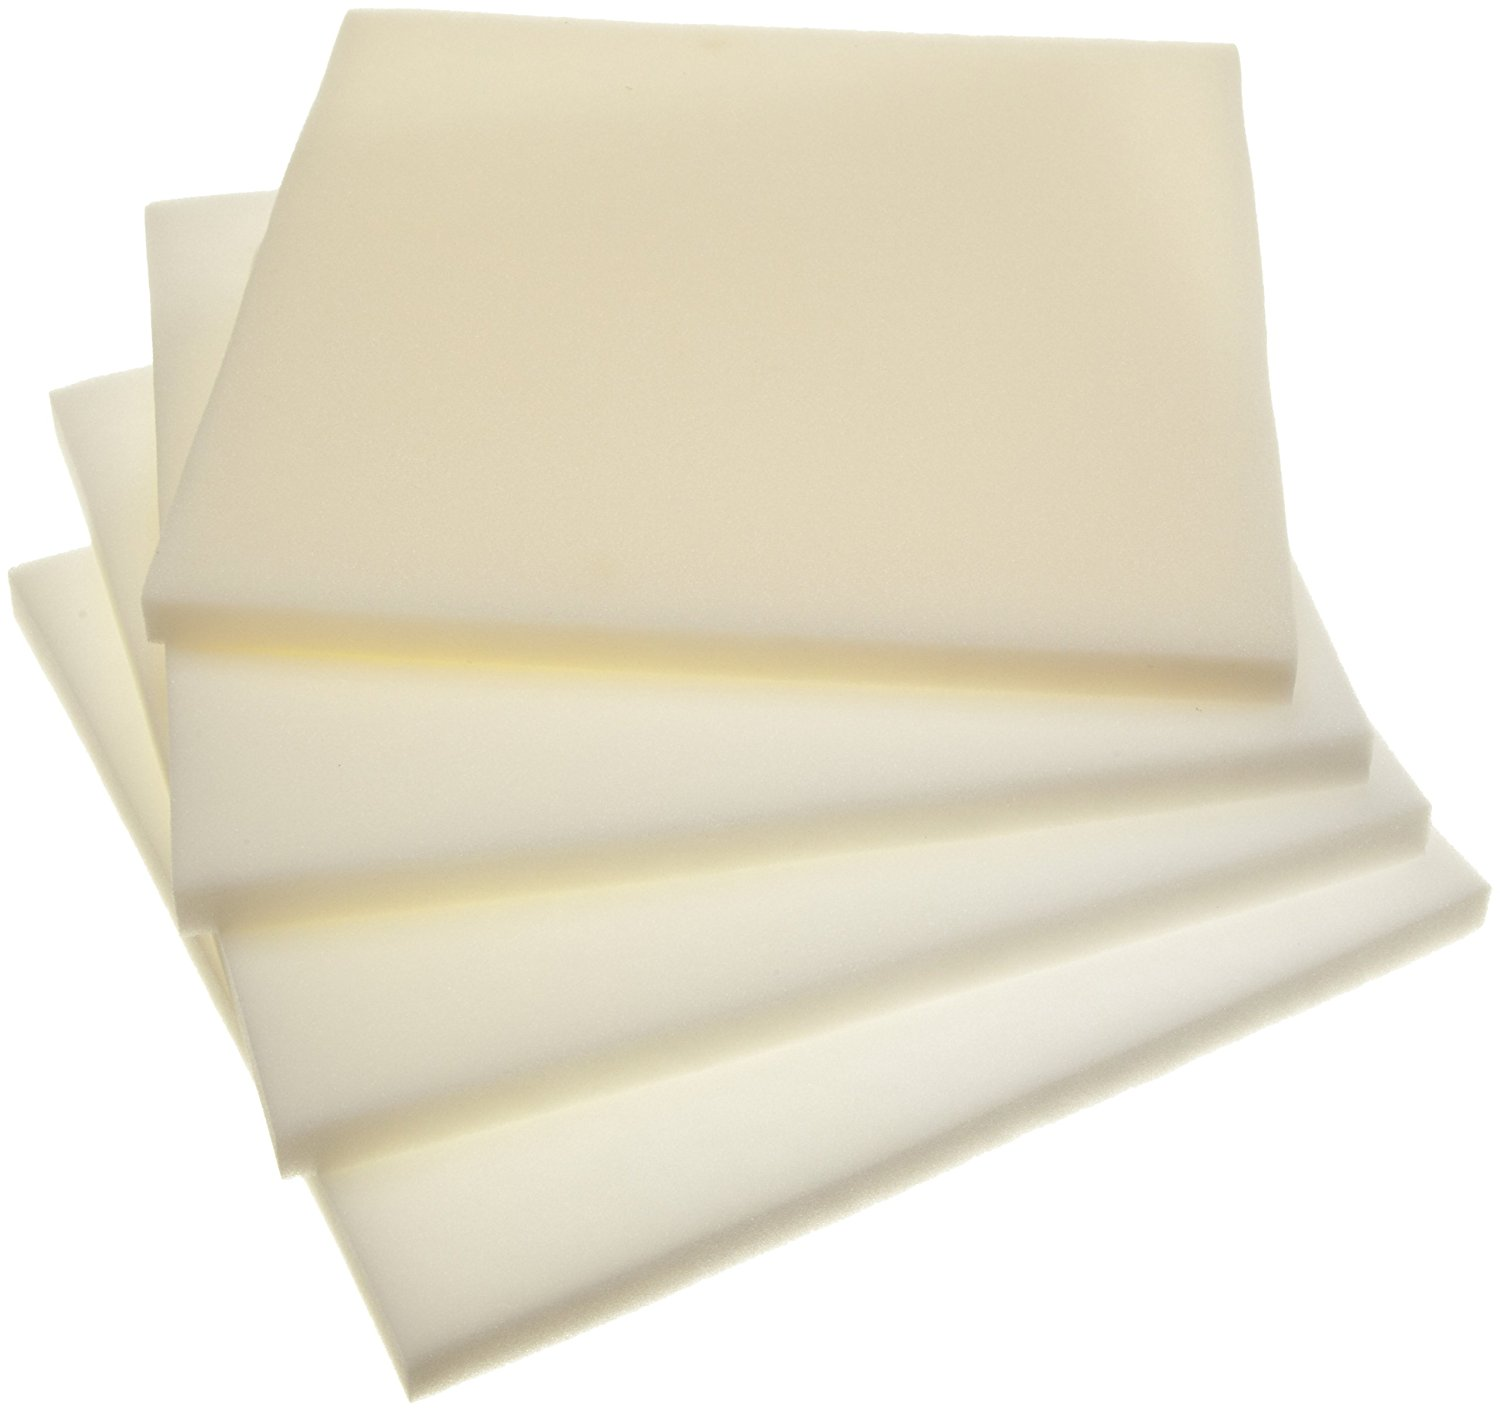 Superbe Foam Seat Cushions, Set Of 4, Perfect For A Variety Of Home And Craft  Projects By Morning Glory   Walmart.com